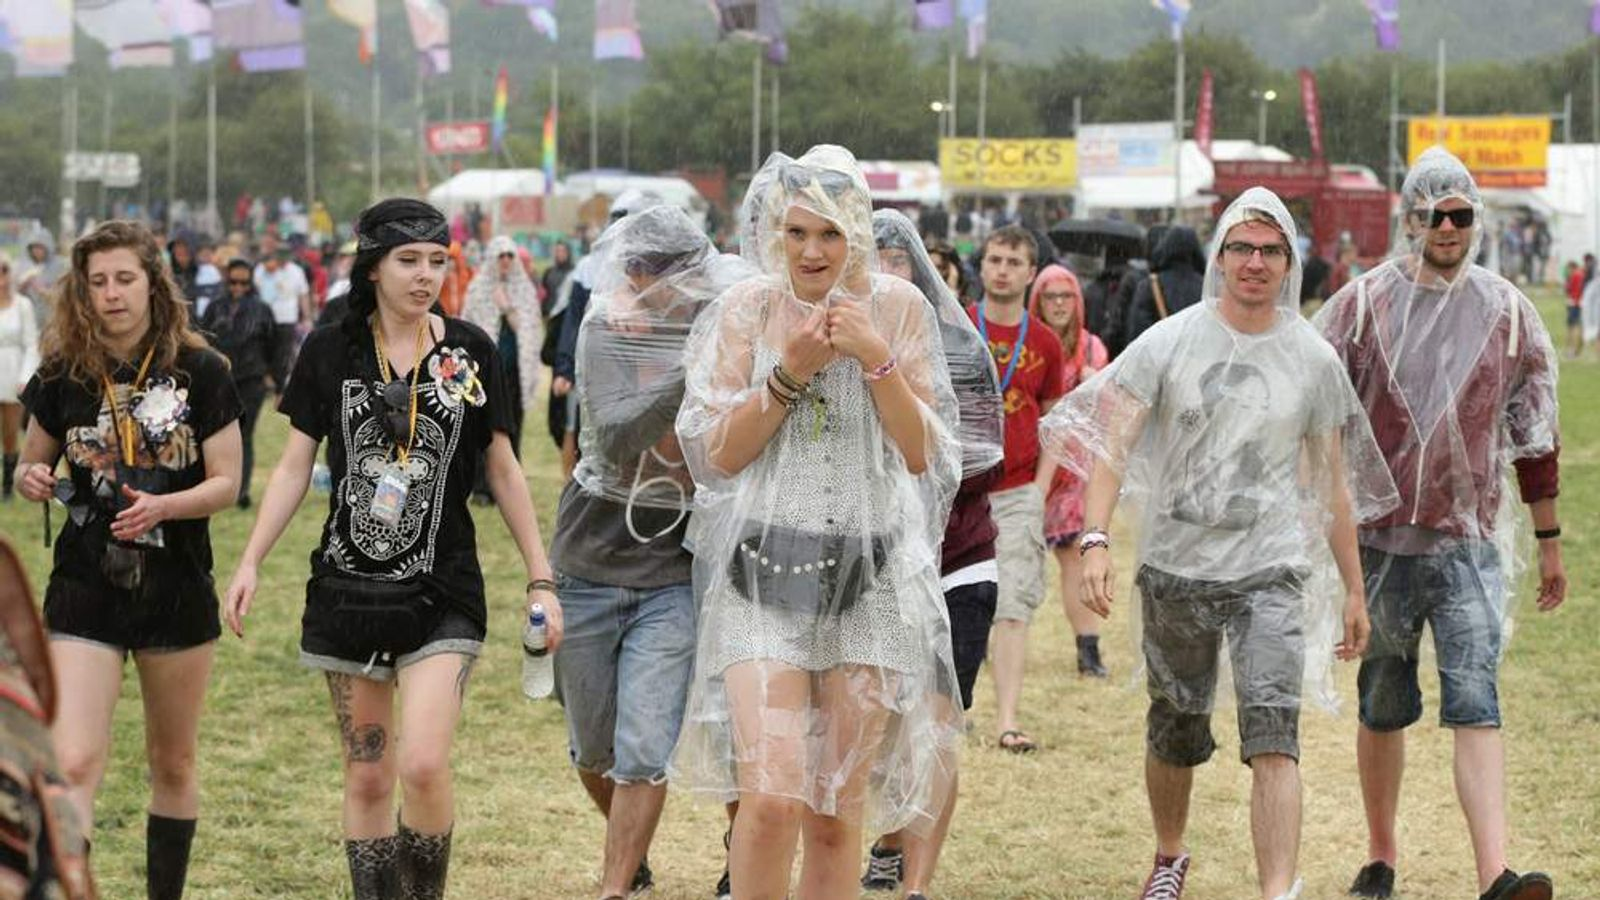 Glastonbury Festival 2014 - Preparations